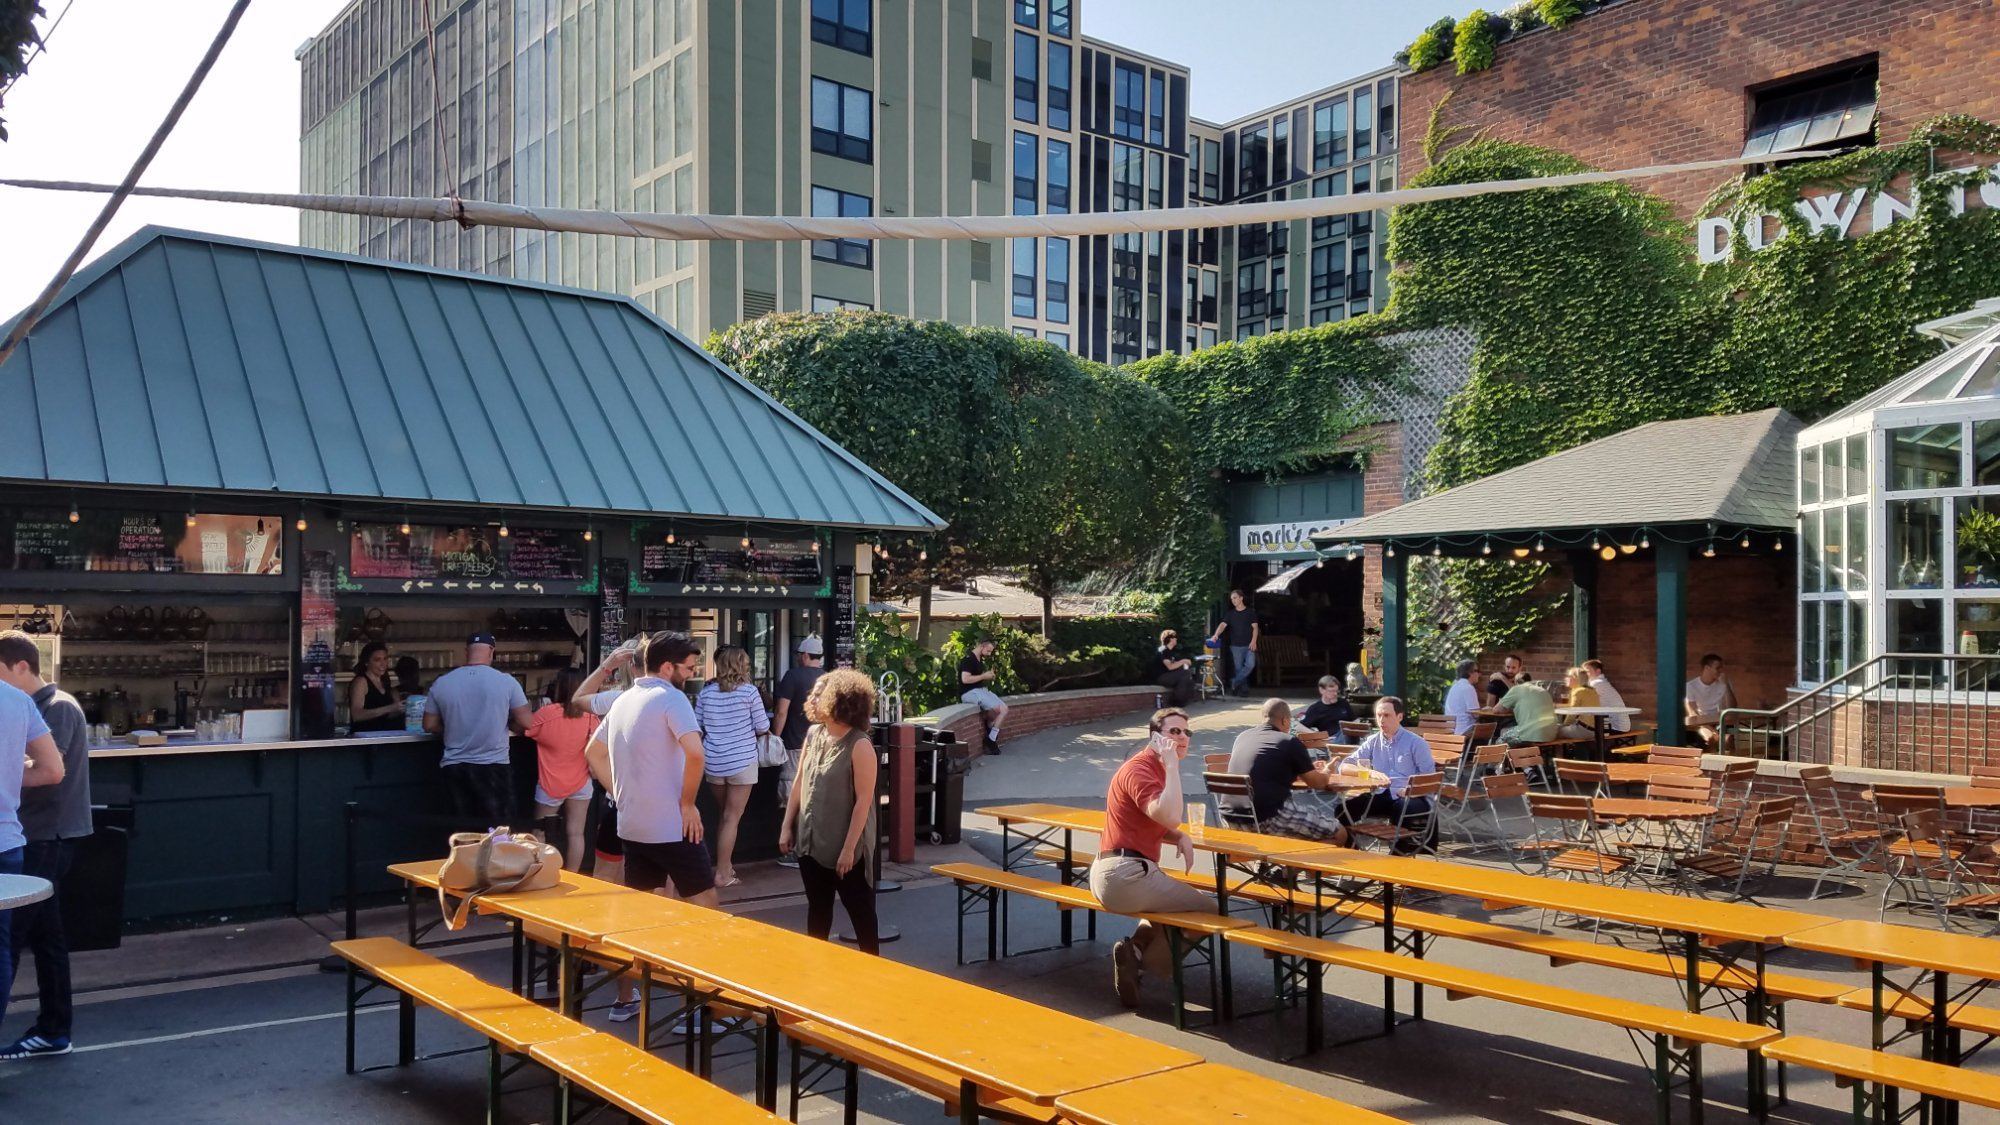 These 9 Restaurants Have The Best Patio Seating In Michigan